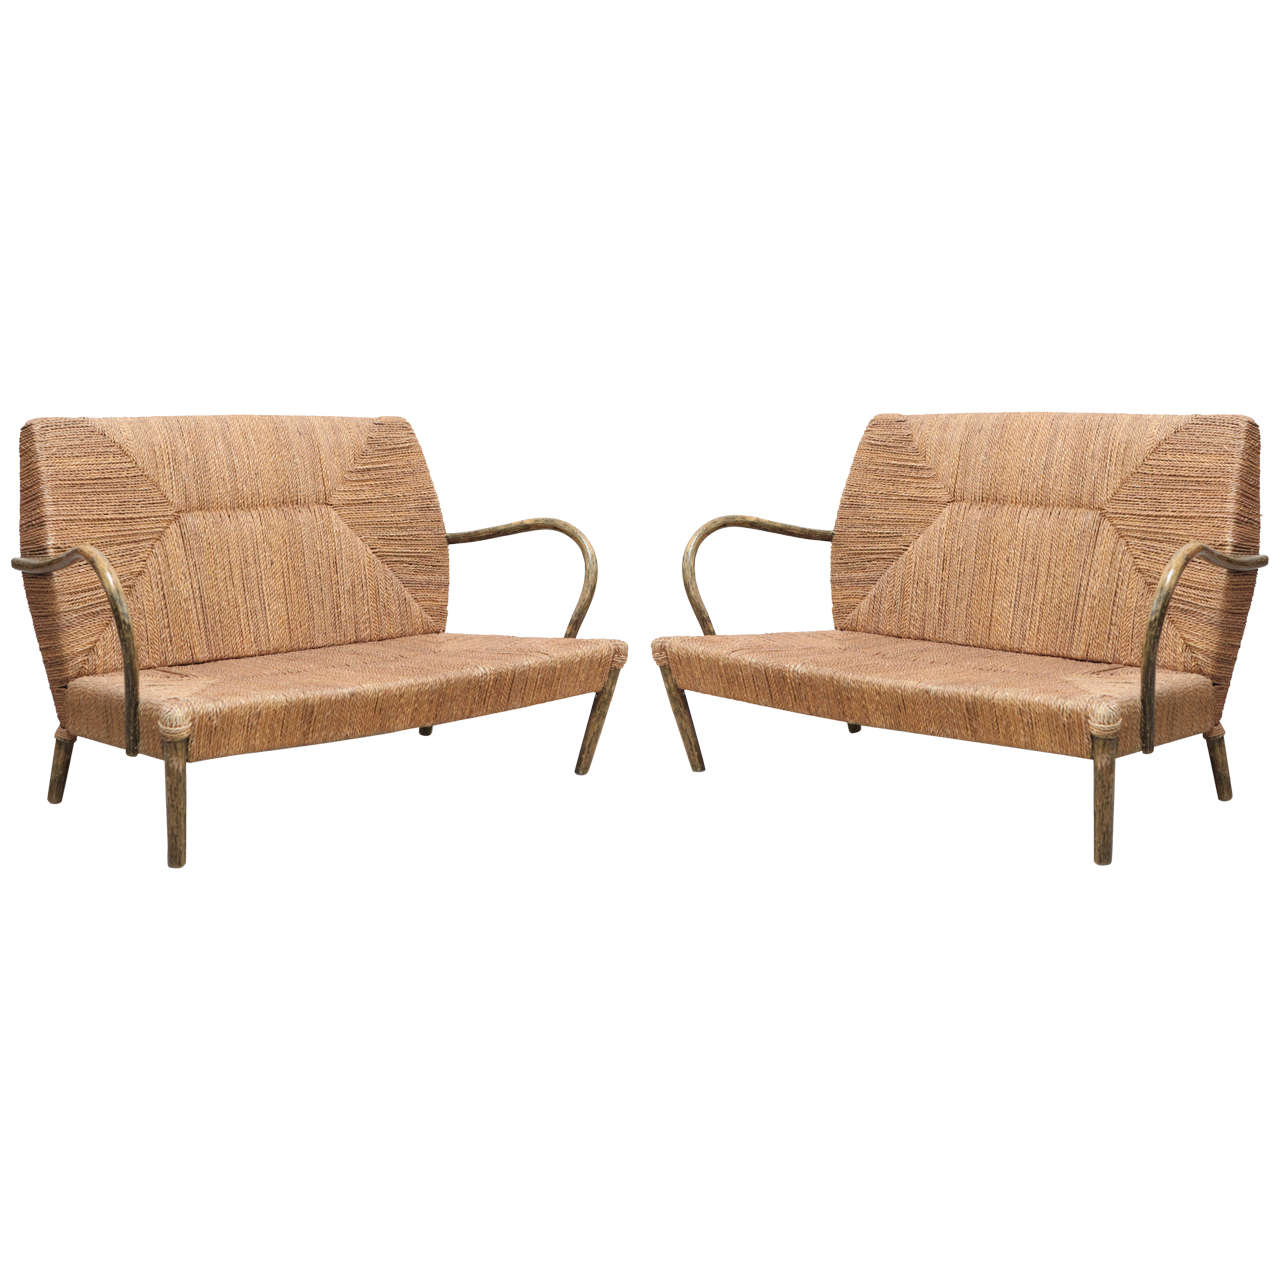 A Pair of Loveseats - Belgium 1970s